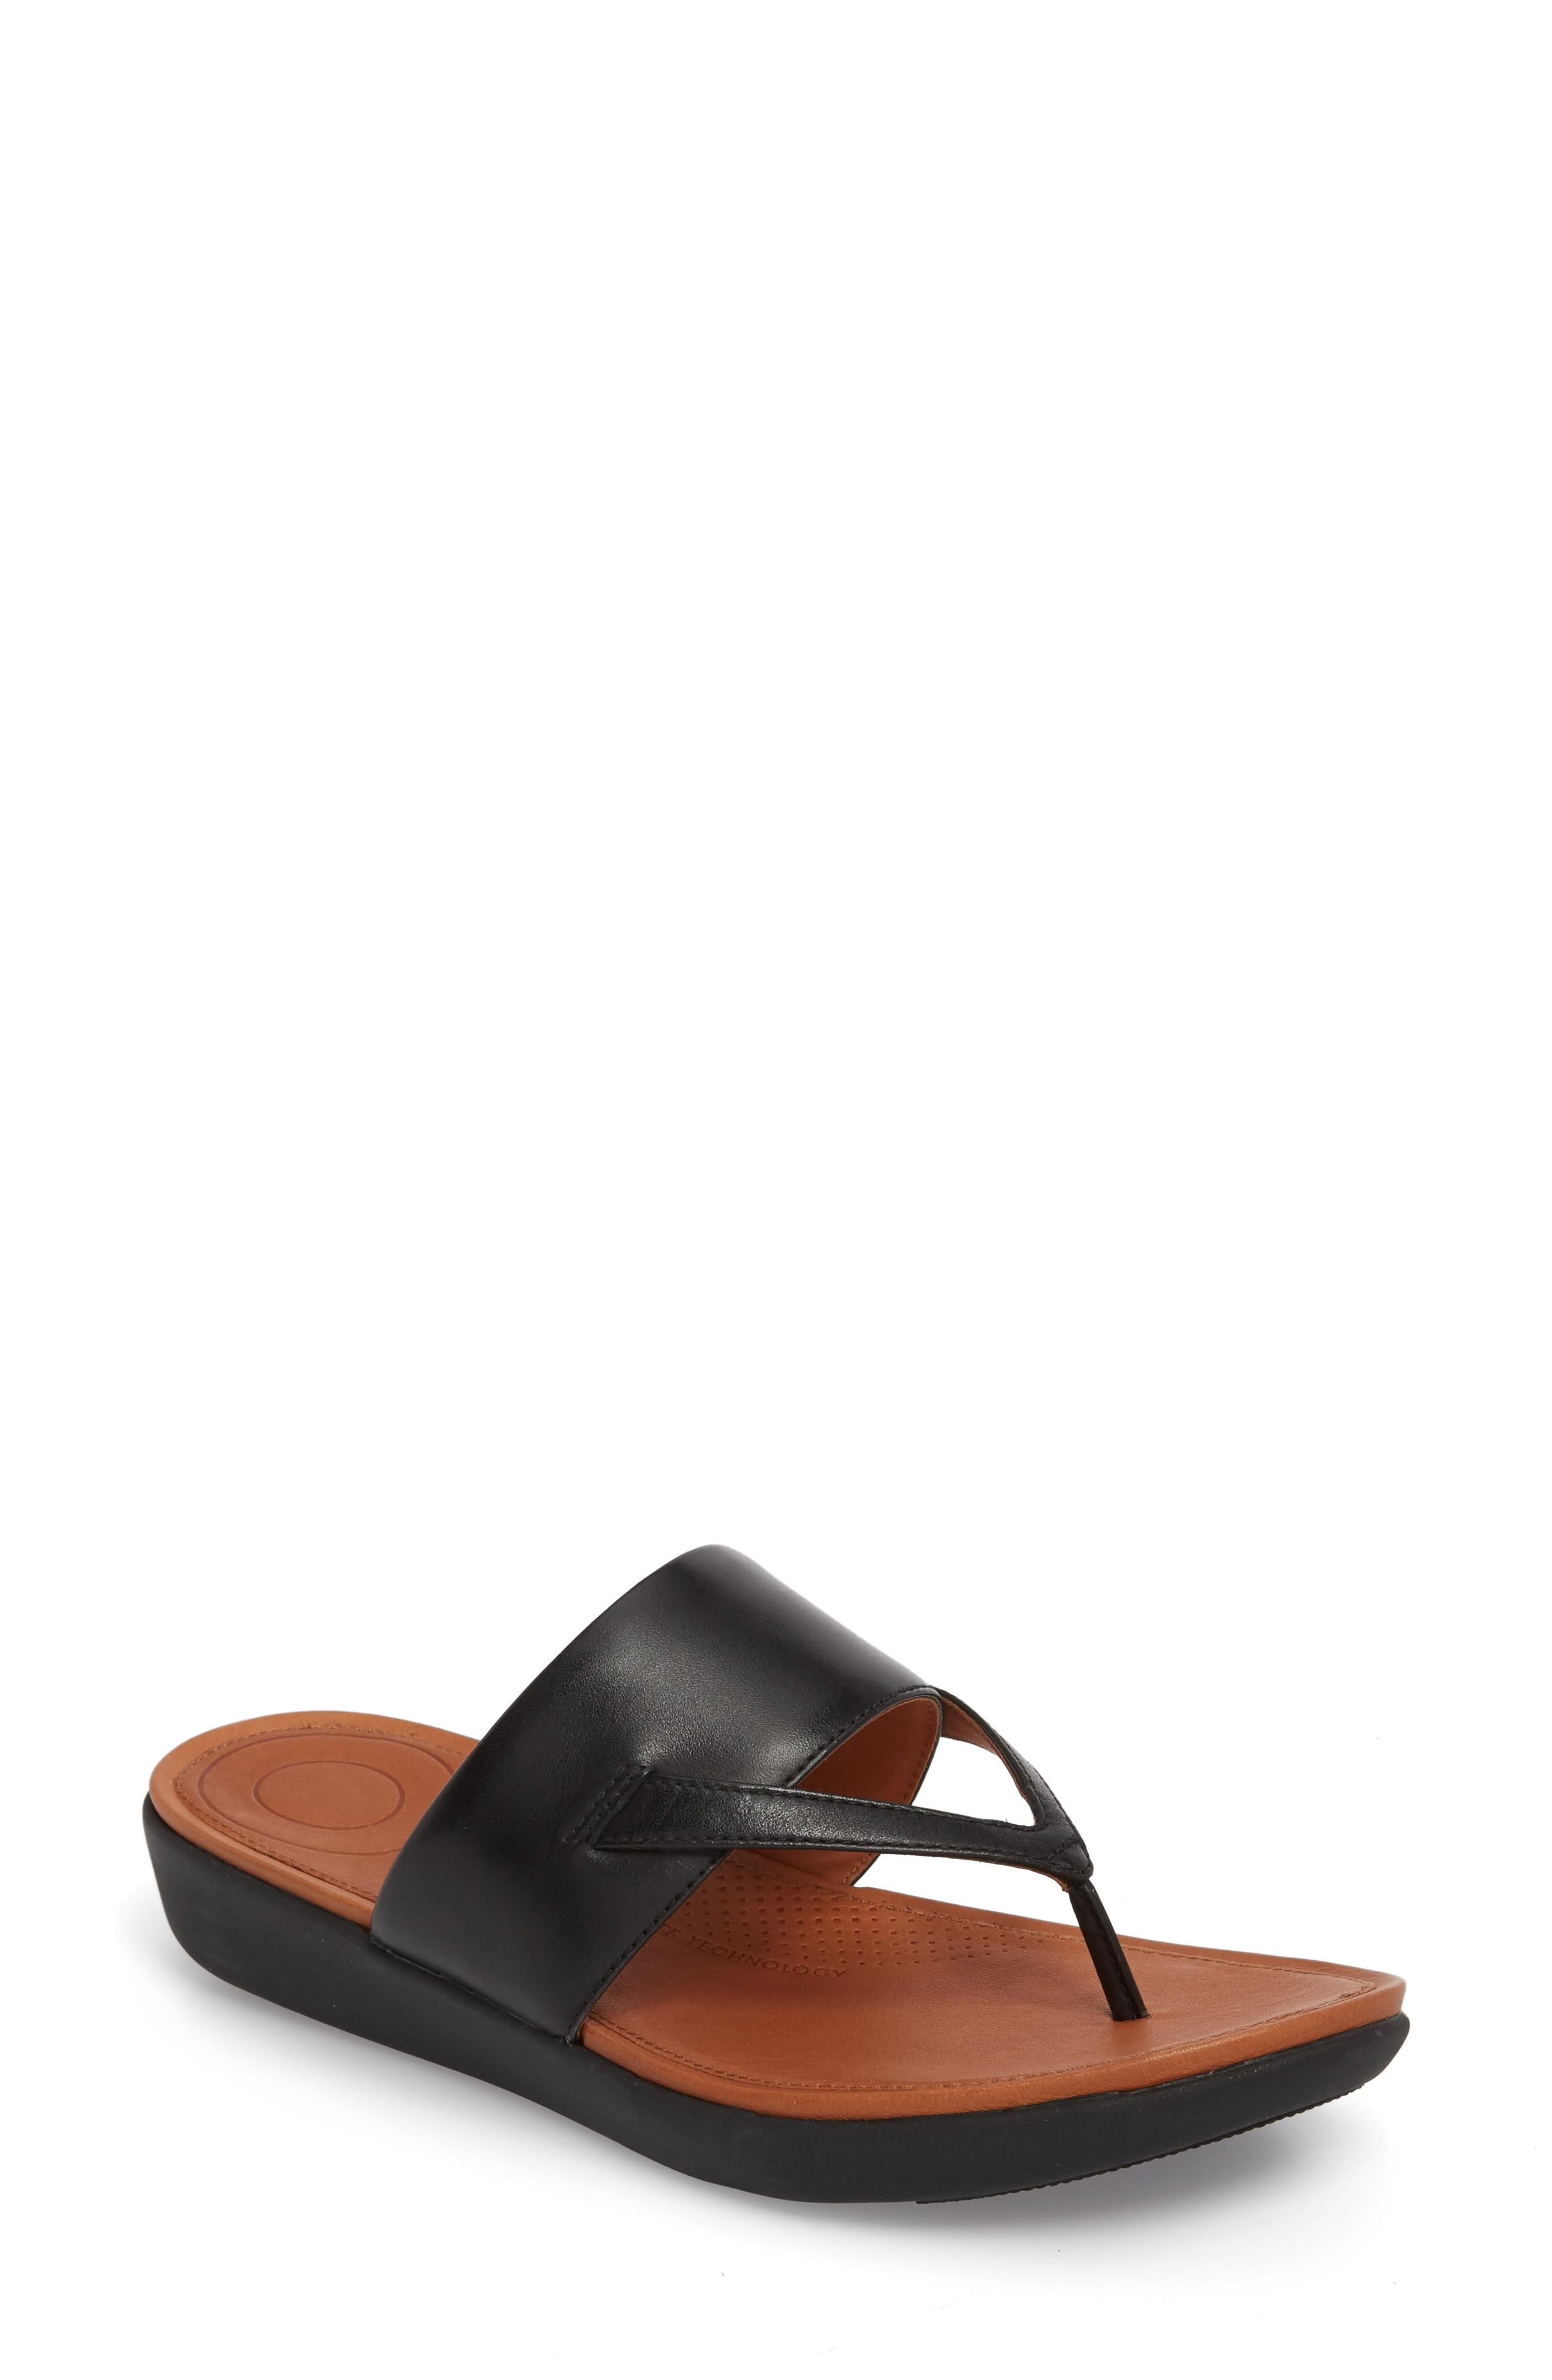 Fitflop Delta Sandal In Black Leather